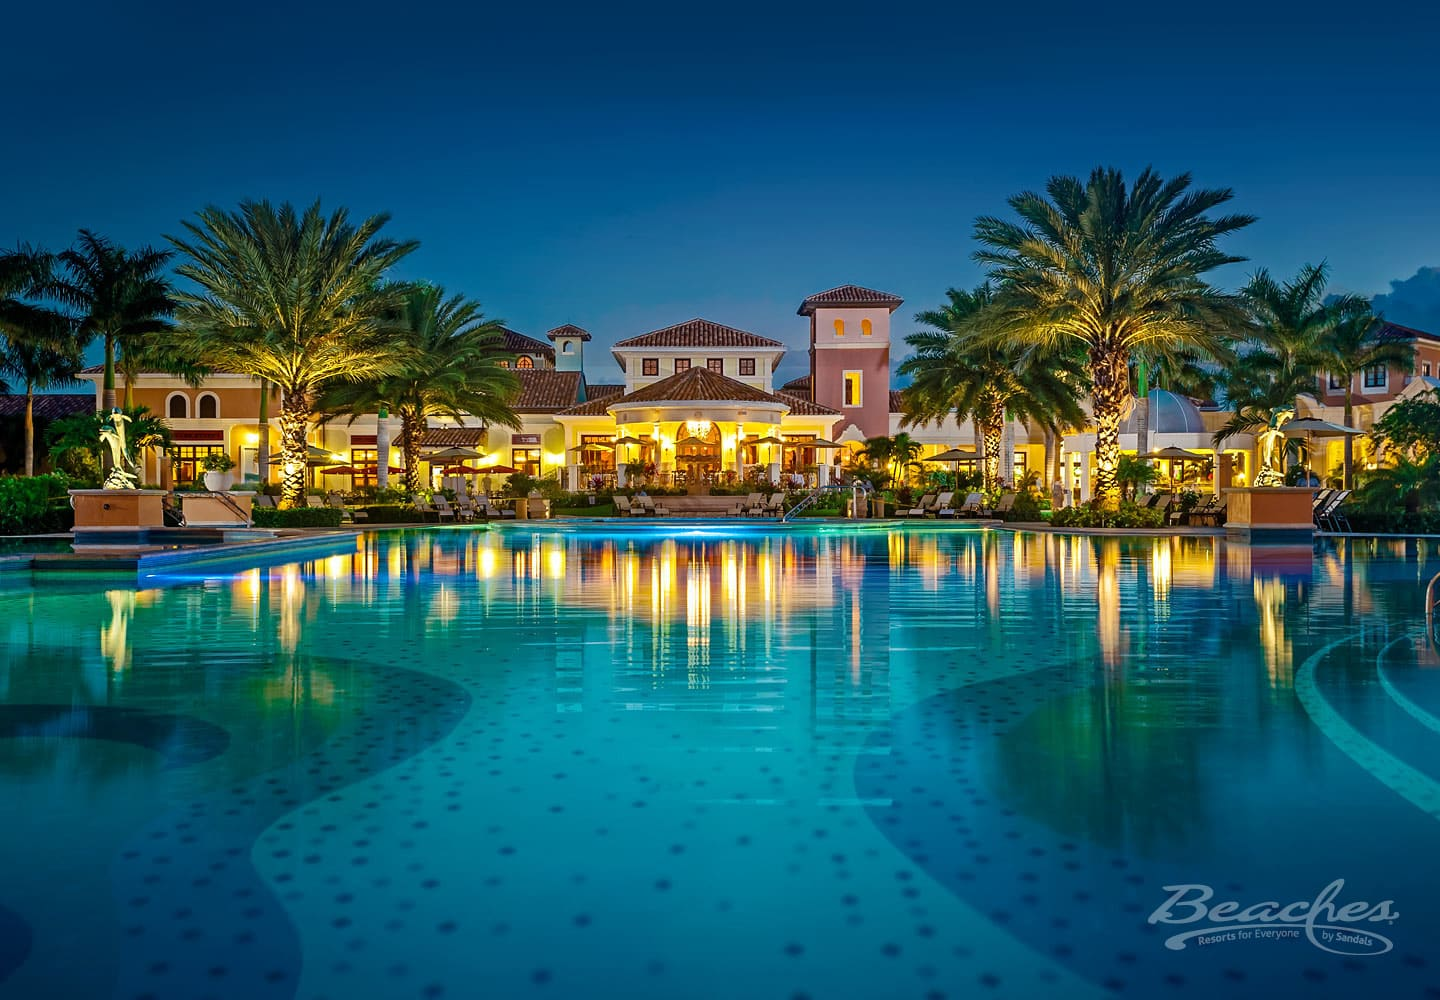 beaches turks and caicos resort for all inclusive family vacations, luxury all inclusive resorts